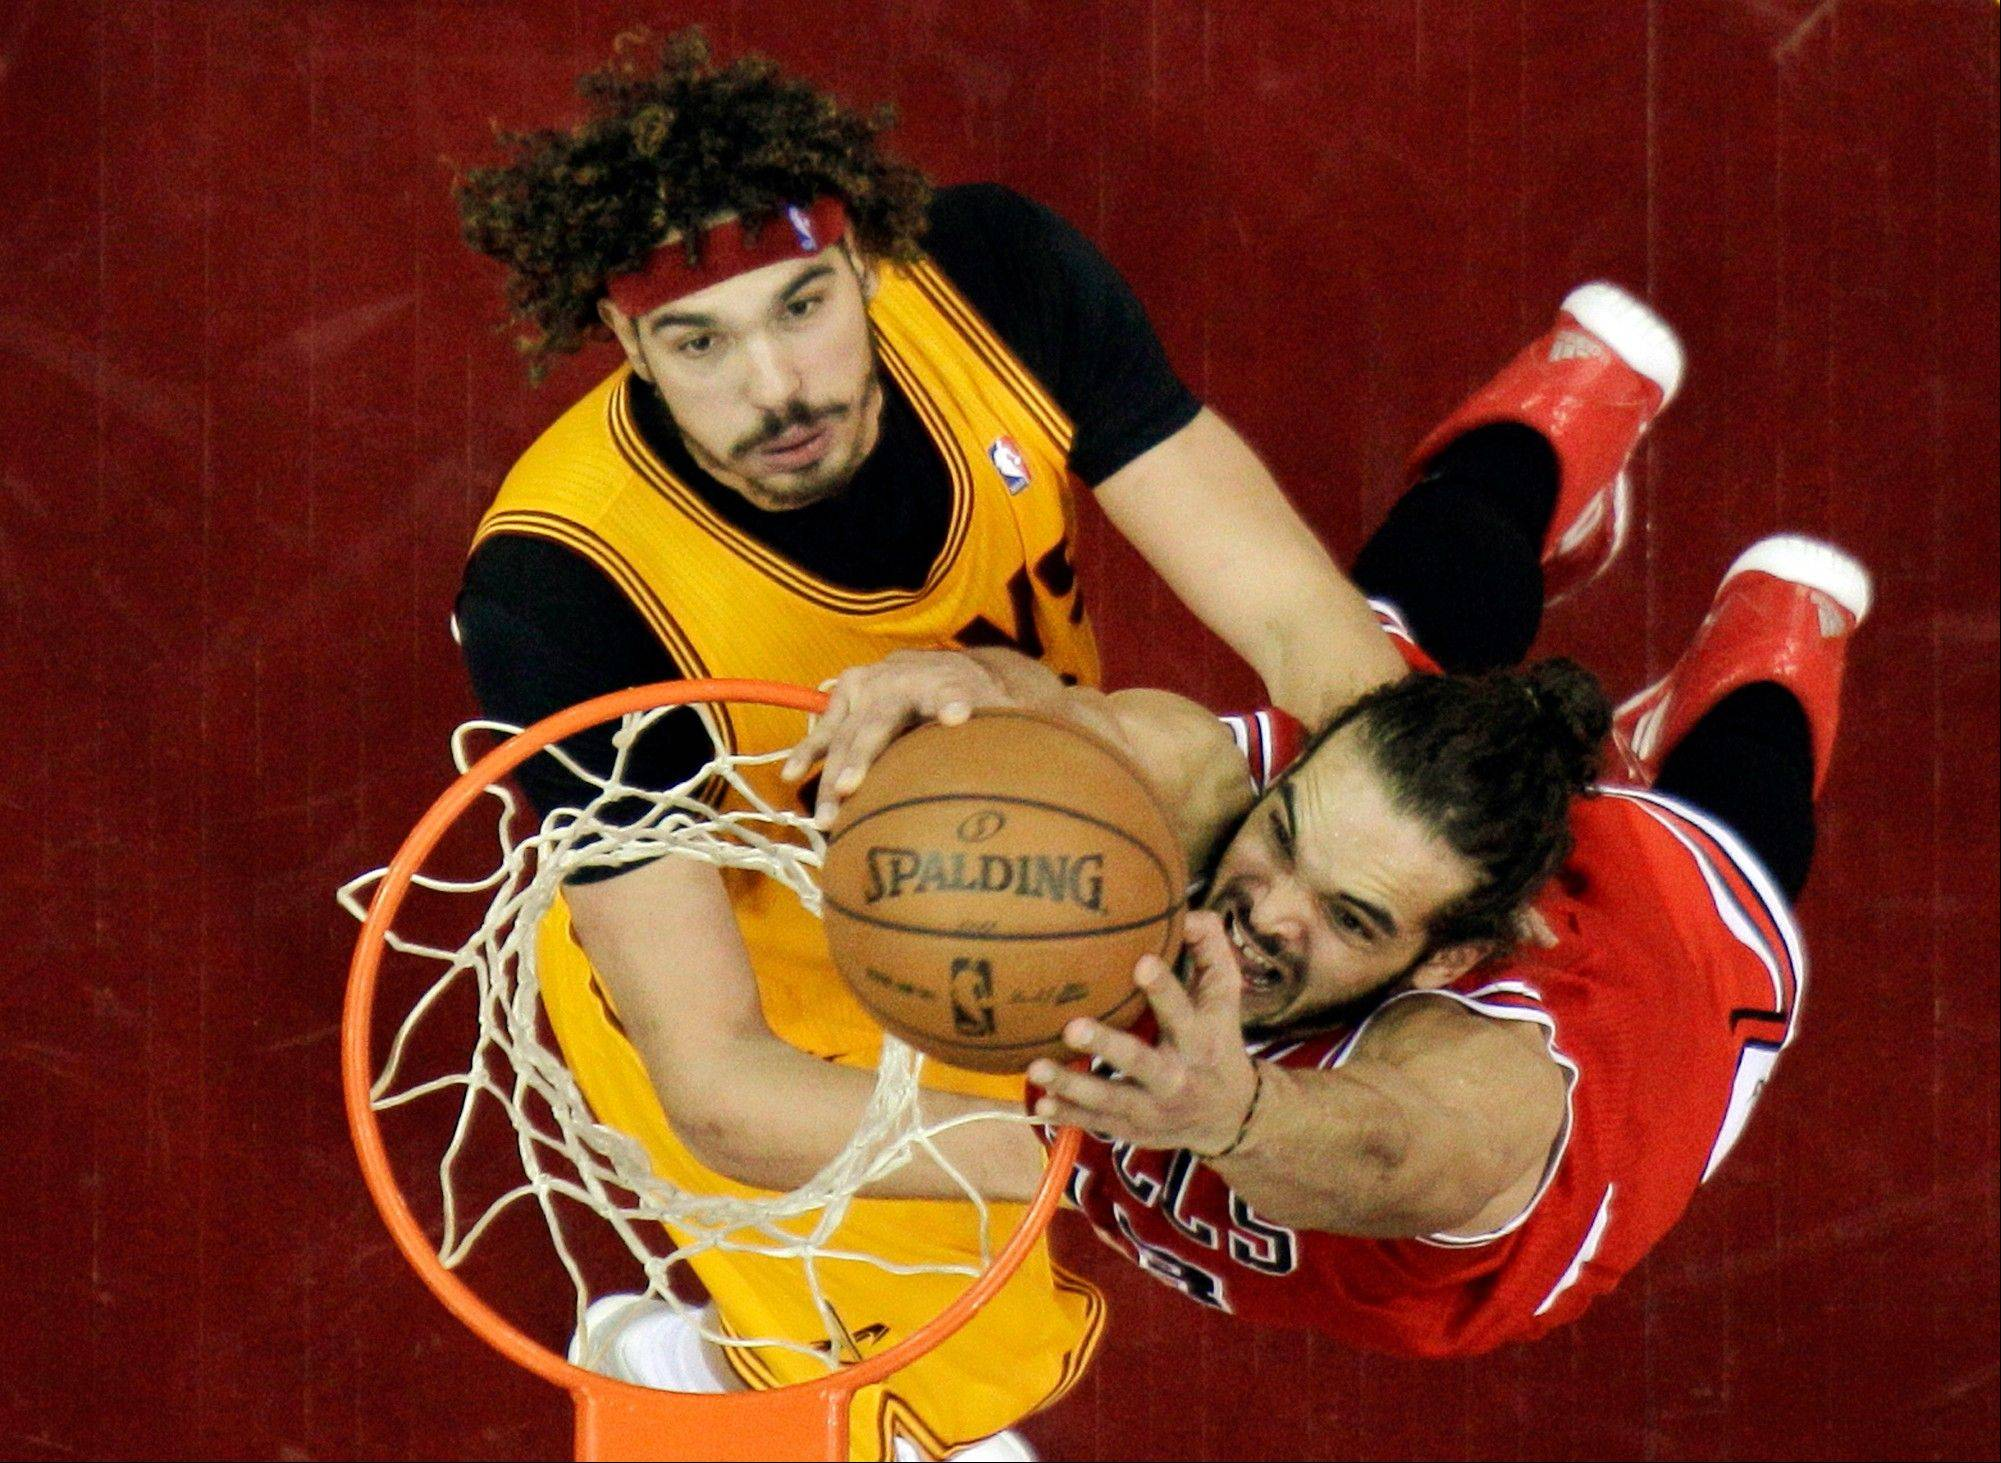 Bulls center Joakim Noah, right, dunks on Cleveland Cavaliers forward Anderson Varejao in their game Wednesday in Cleveland. The Bulls won 98-87, and Noah collected 18 rebounds.